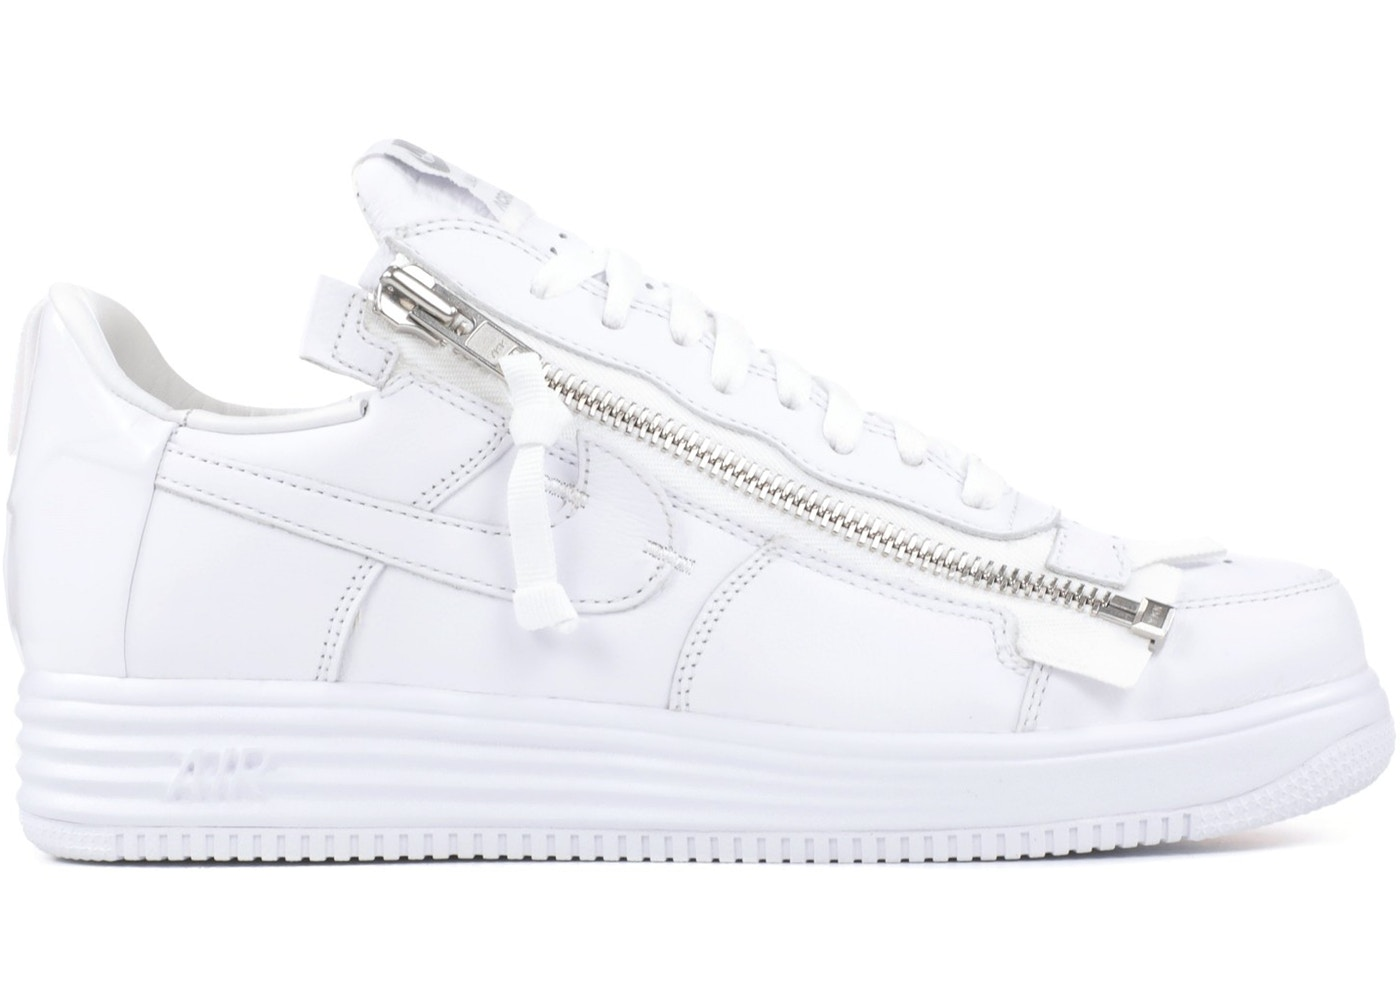 b649f7cae1f37 Buy Nike Air Force Shoes   Deadstock Sneakers